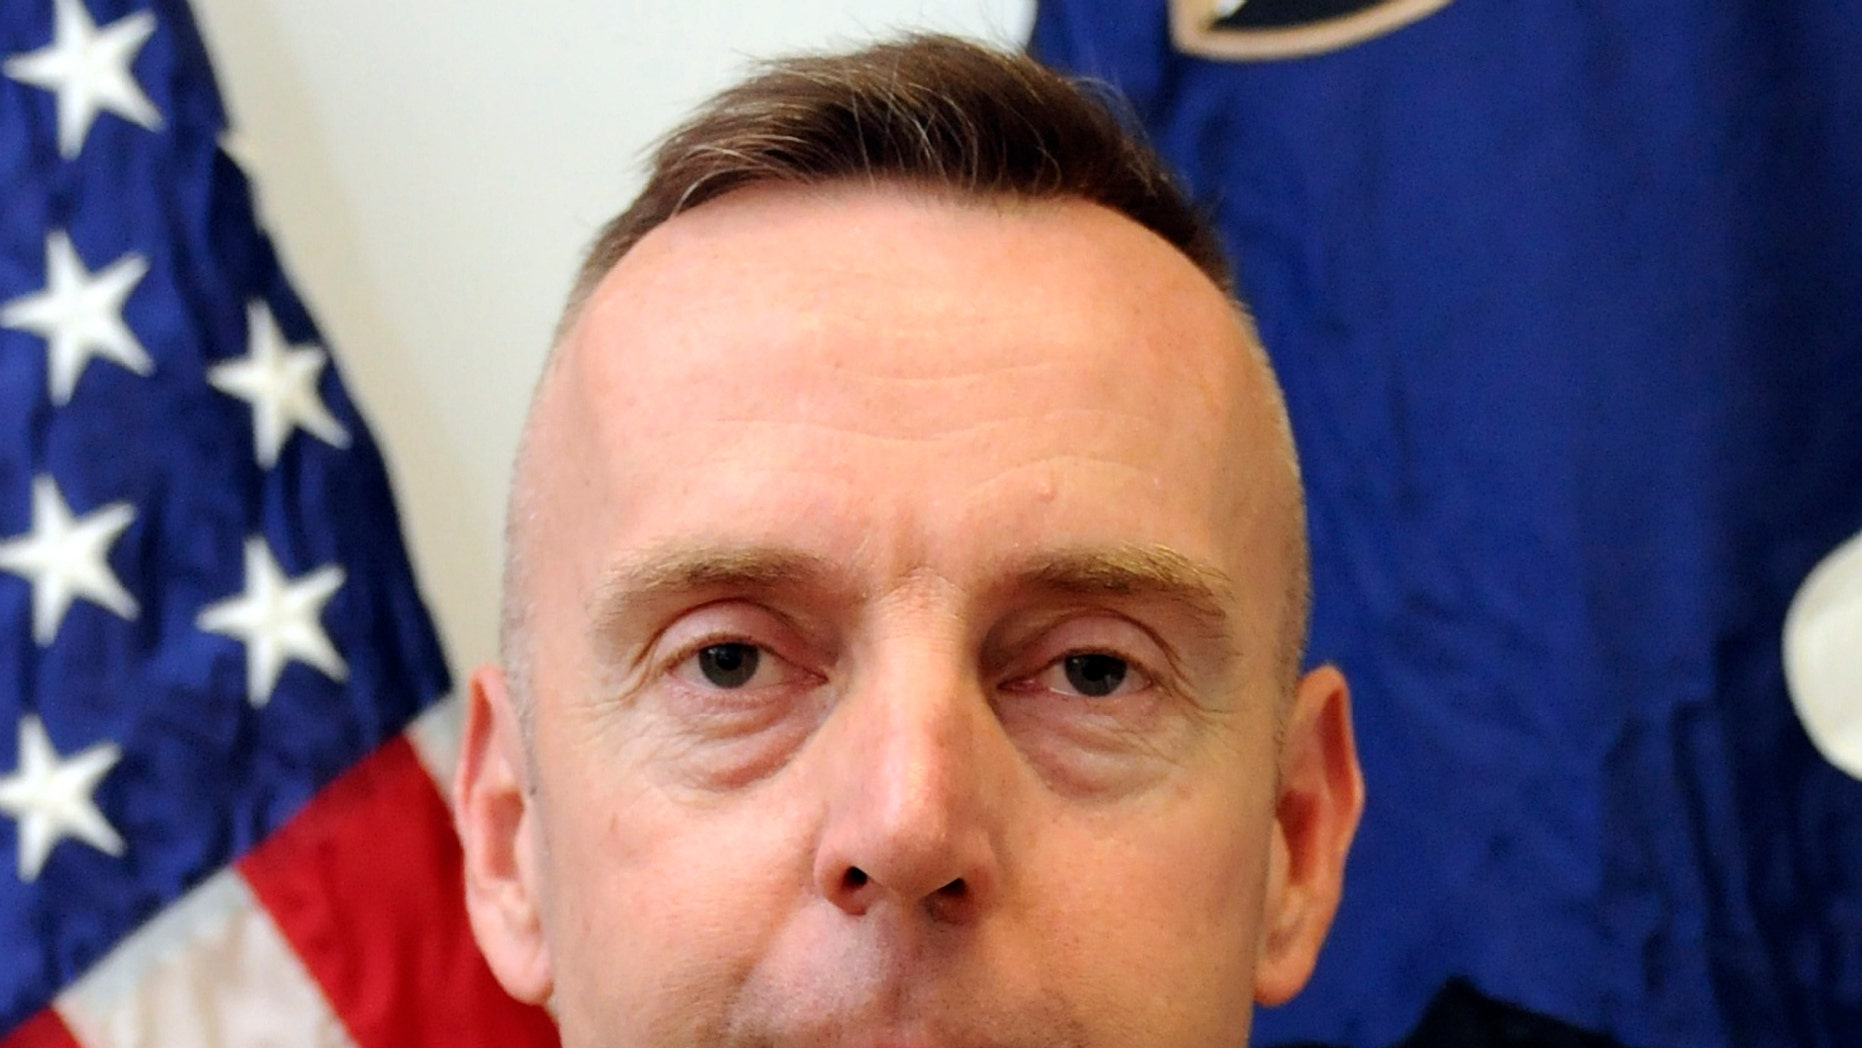 This undated file photo provided by the U.S. Army shows Brig. Gen. Jeffrey Sinclair.